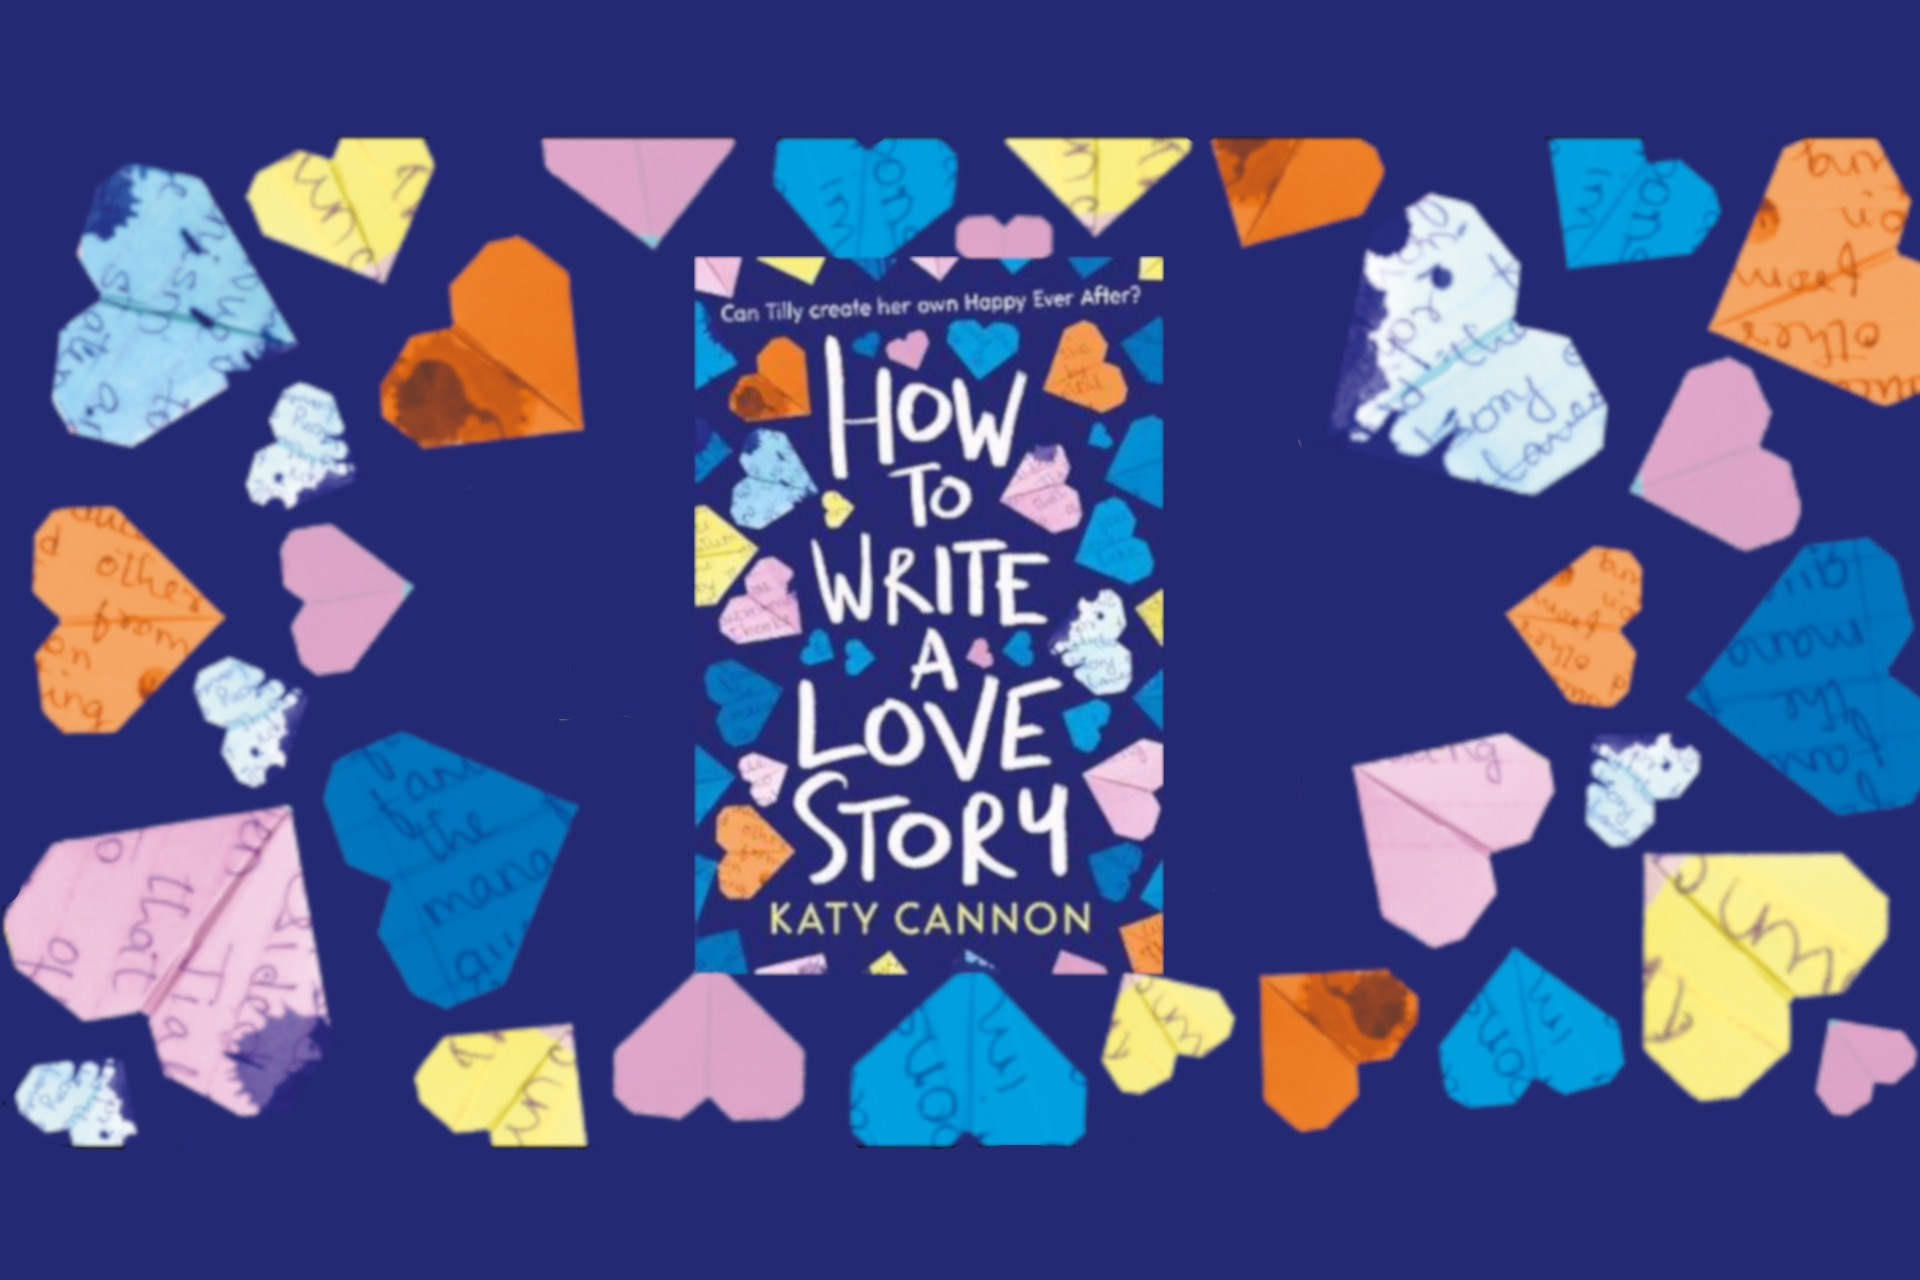 How to Write a Love Story by Katy Cannon